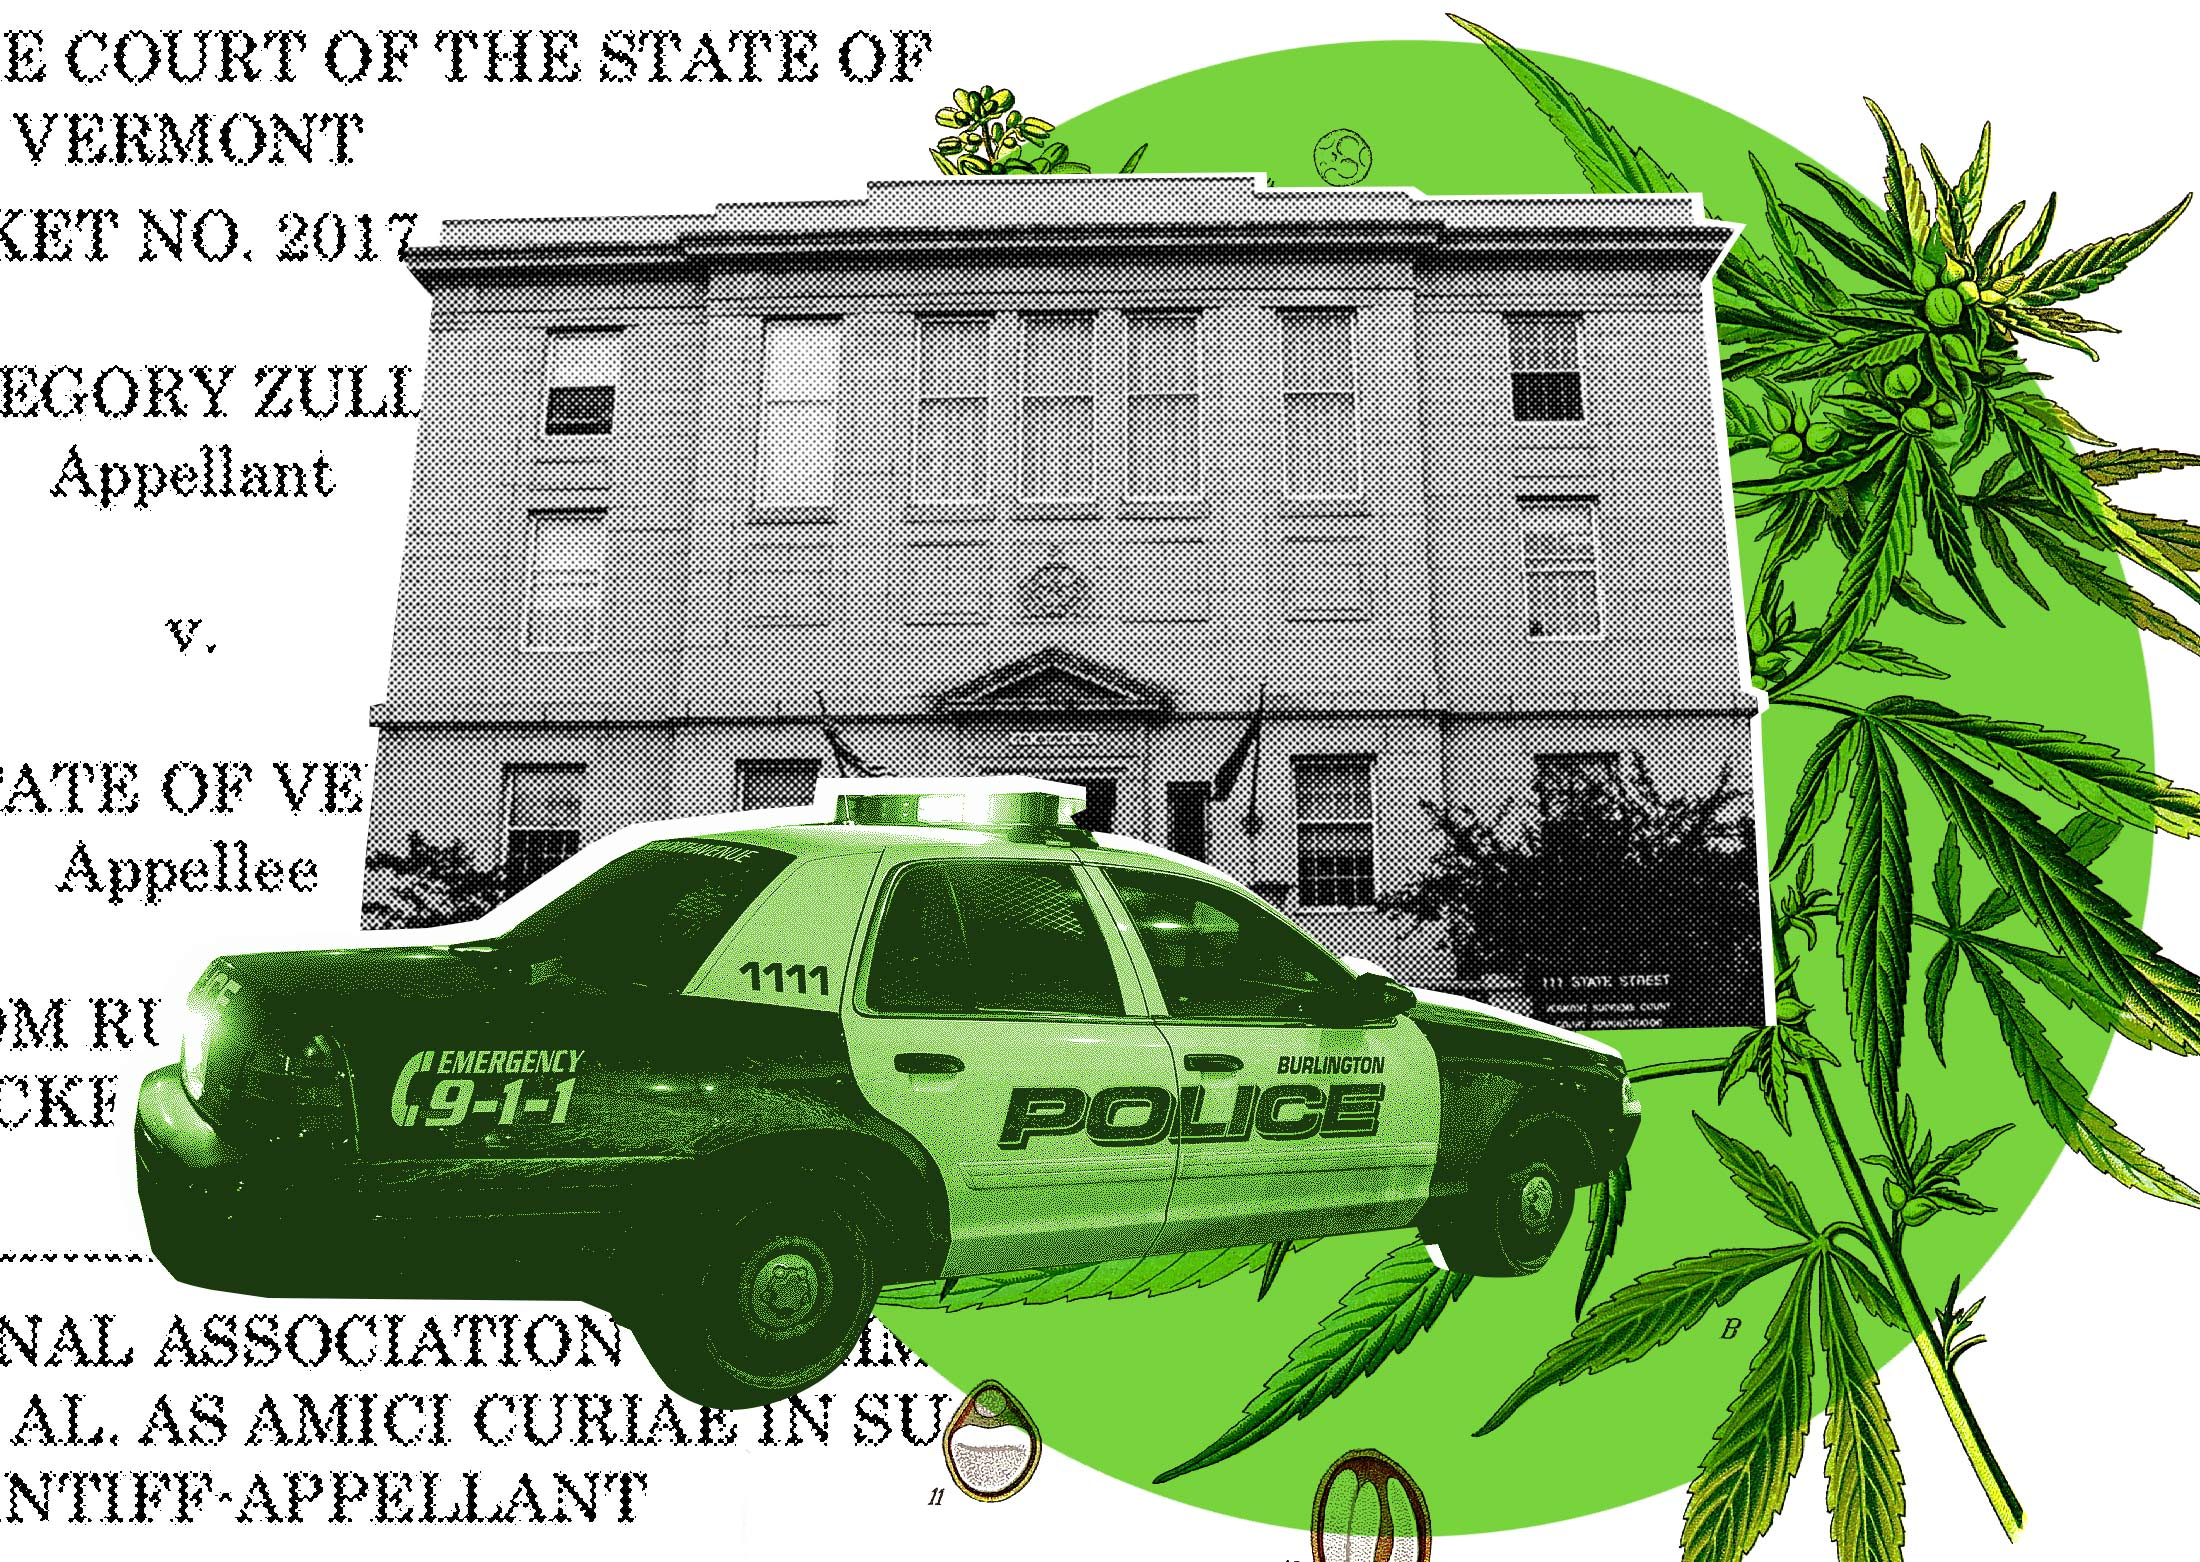 Photo illustration of a Burlington police car, an image from the Vermont v. Zullo opinion, marijuana leaves, and the Vermont Supreme Court.